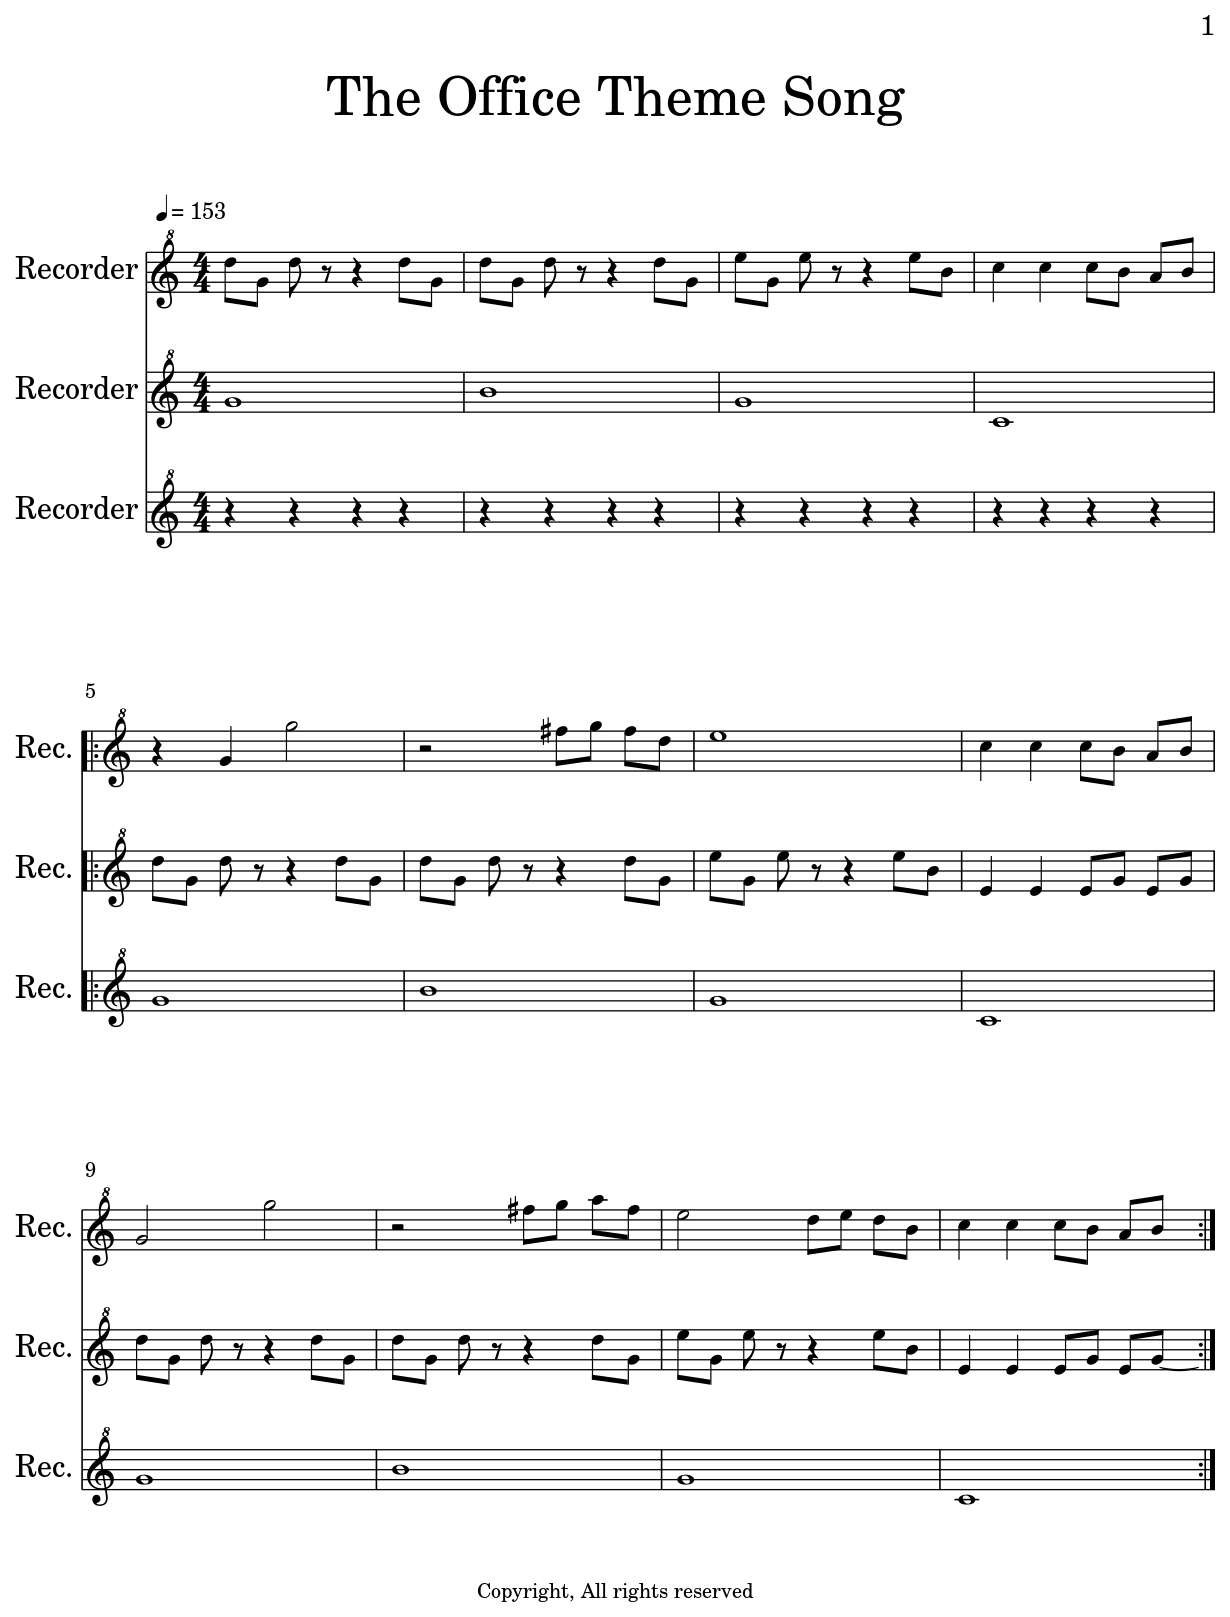 the office theme song sheet music for recorder